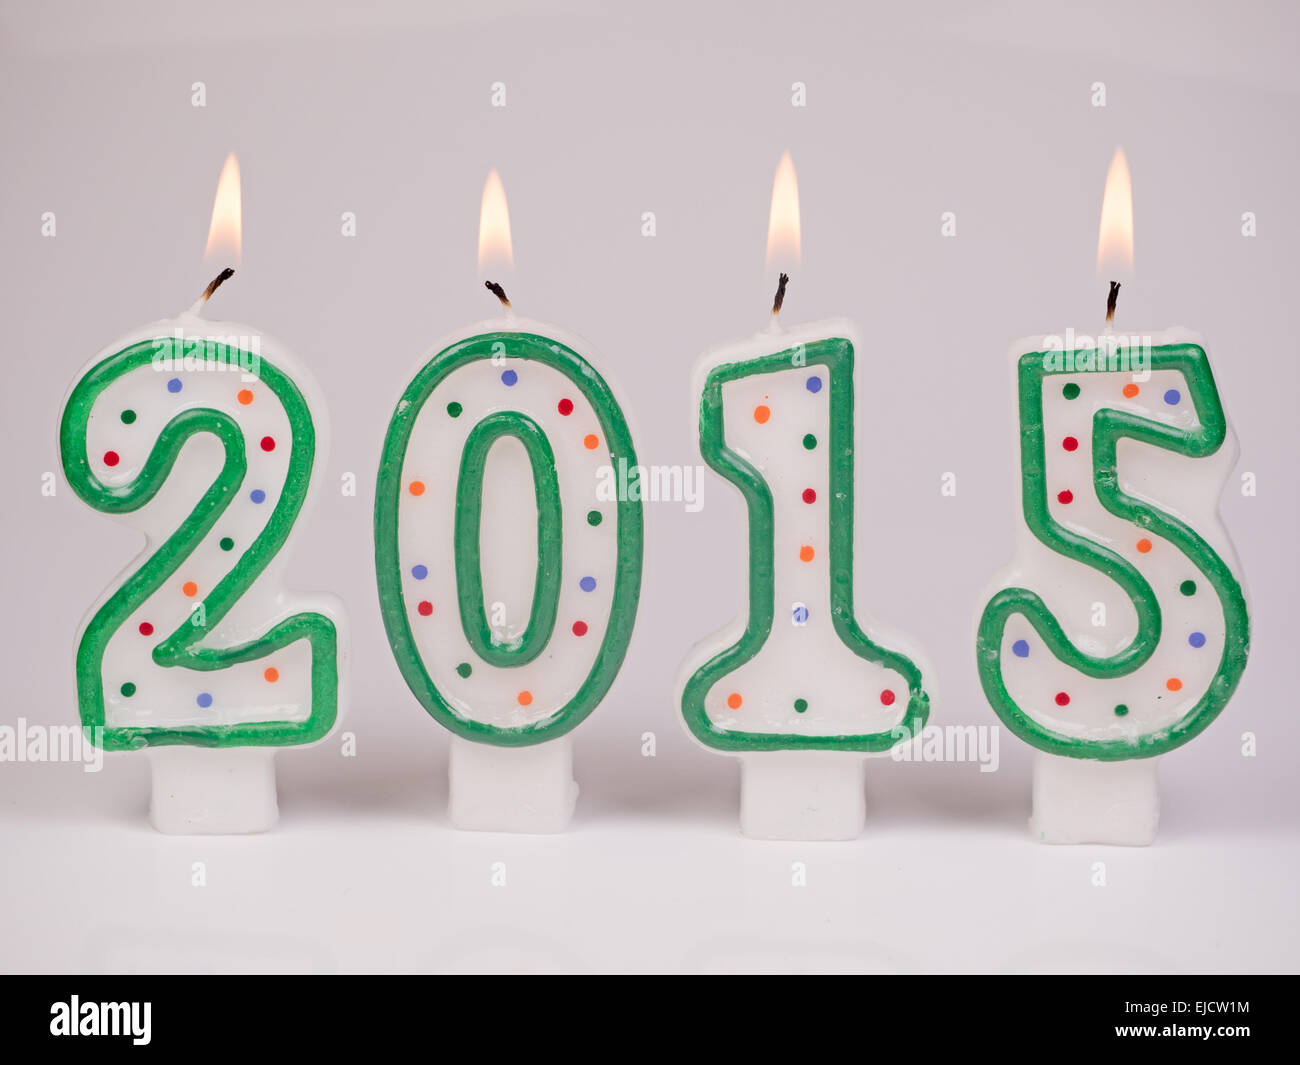 Digits candles 2015 - Stock Image